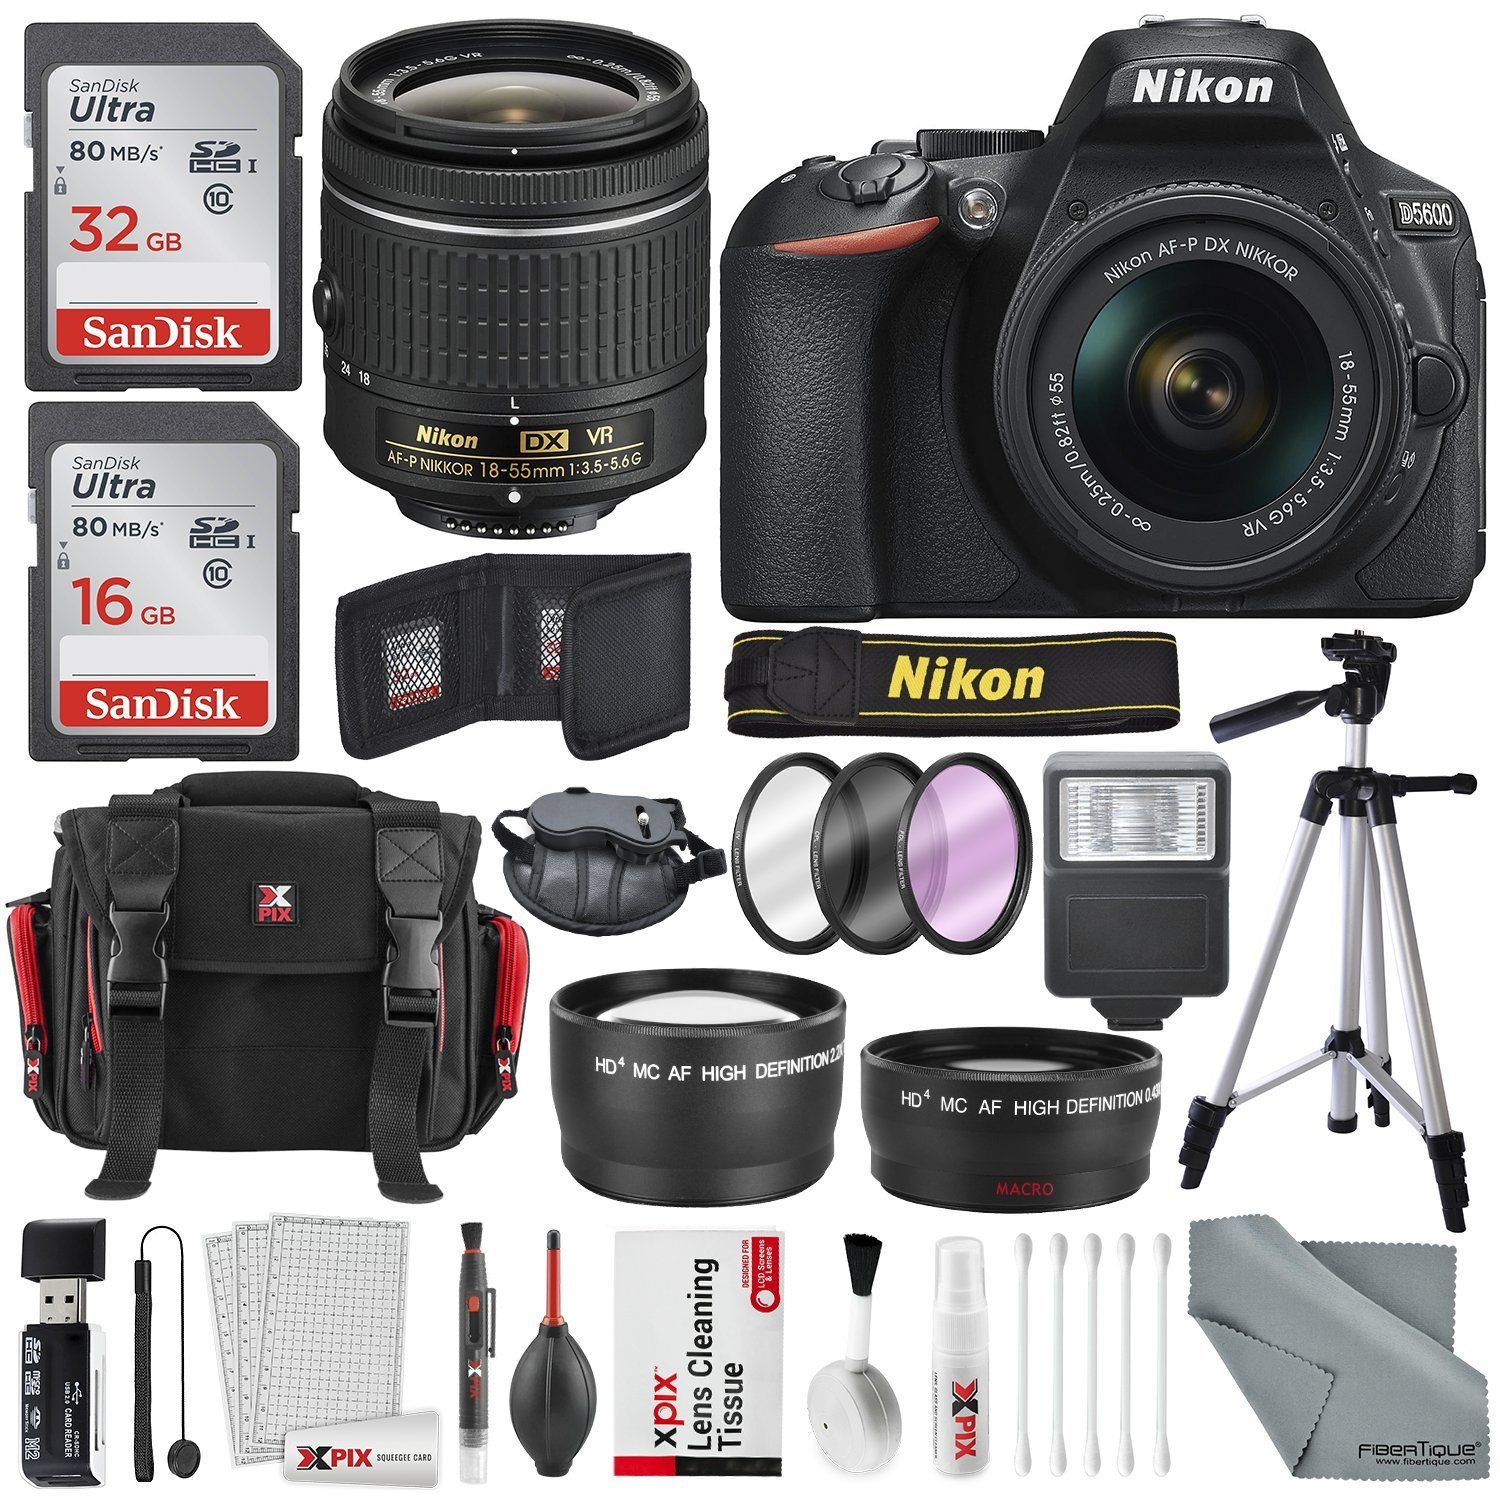 Nikon D5600 DSLR Camera And 18-55mm Lens Kit W/ Total of 48 GB Memory Card  + Telephoto & Wideangle Lens + Xpix Lens Handling Accessories with Basic